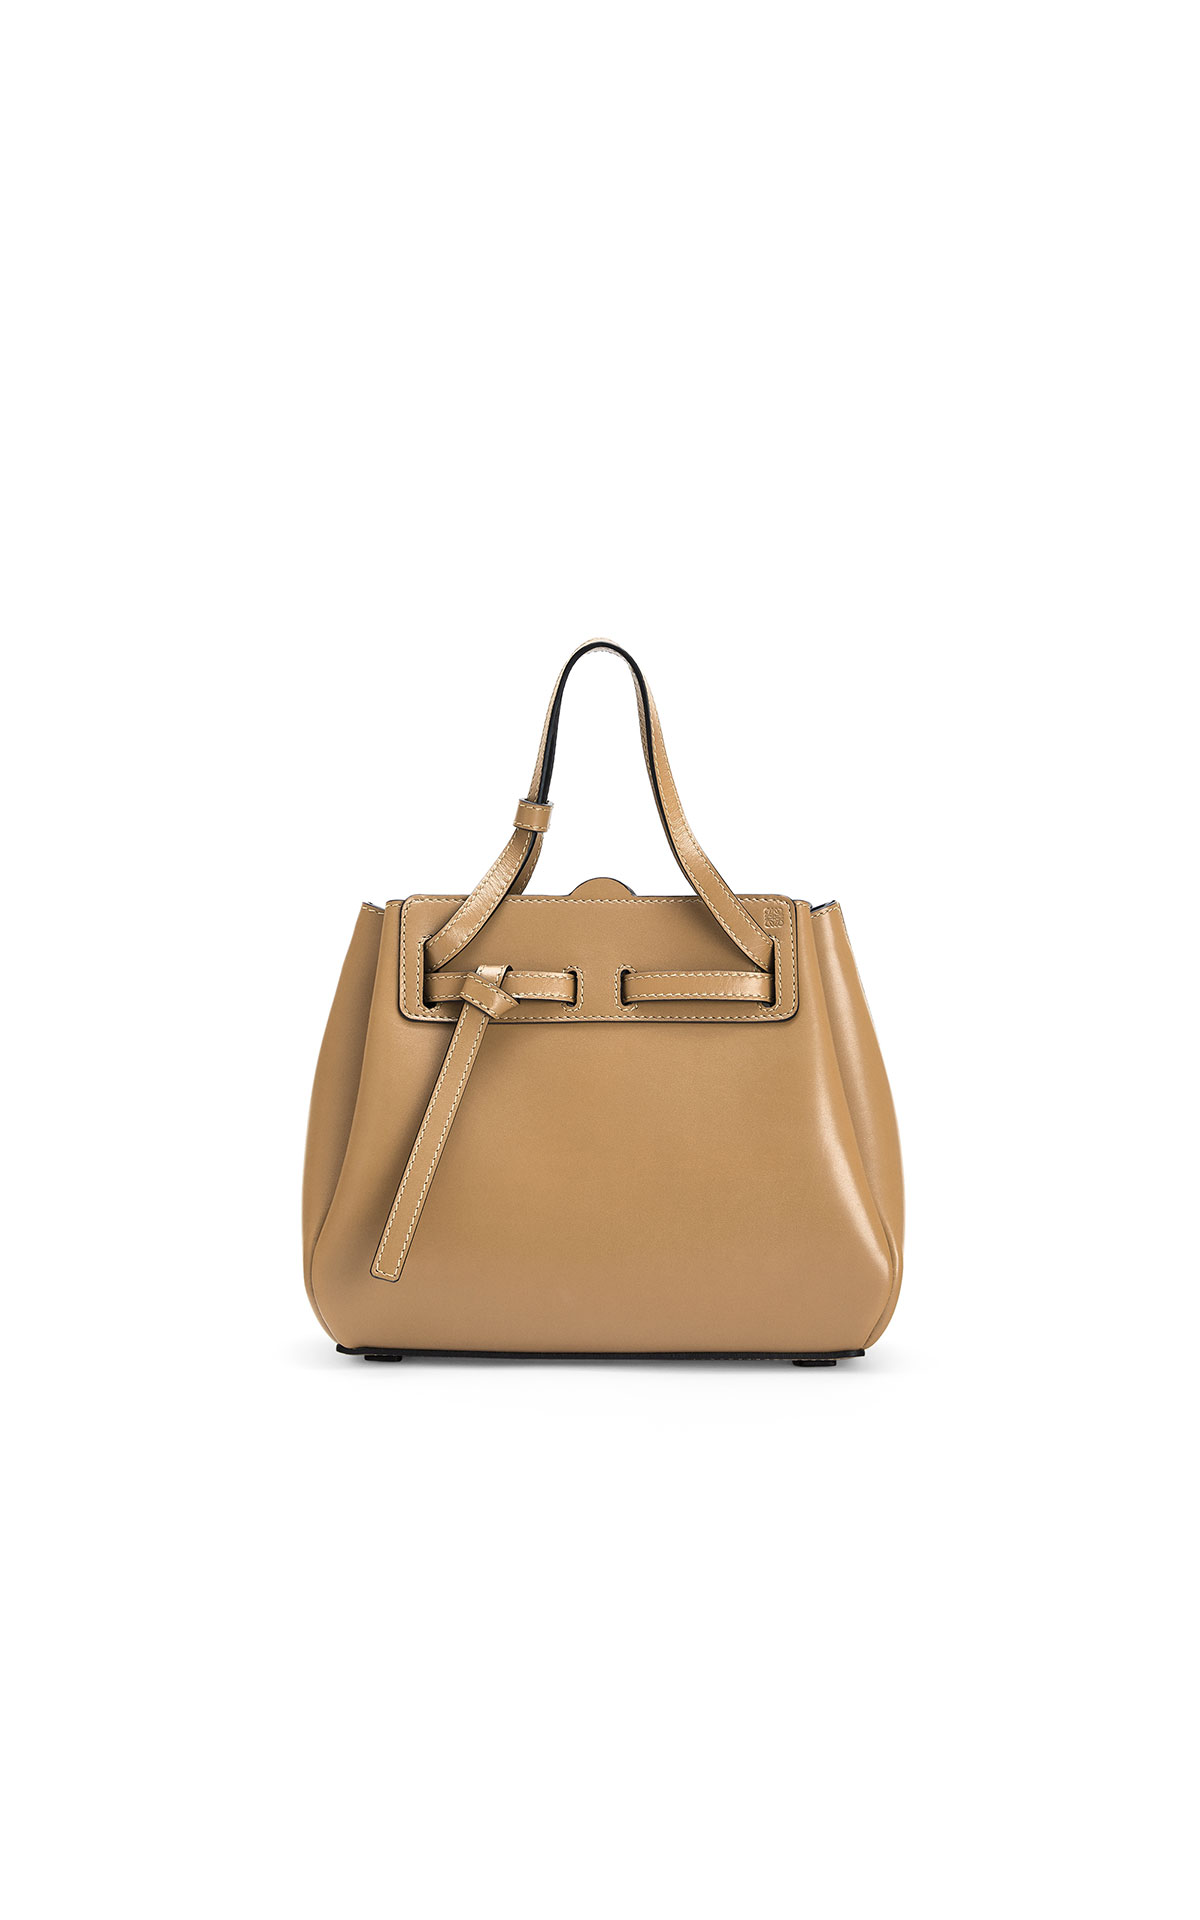 LOEWE Lazo mini bag in dune at The Bicester Village Shopping Collection